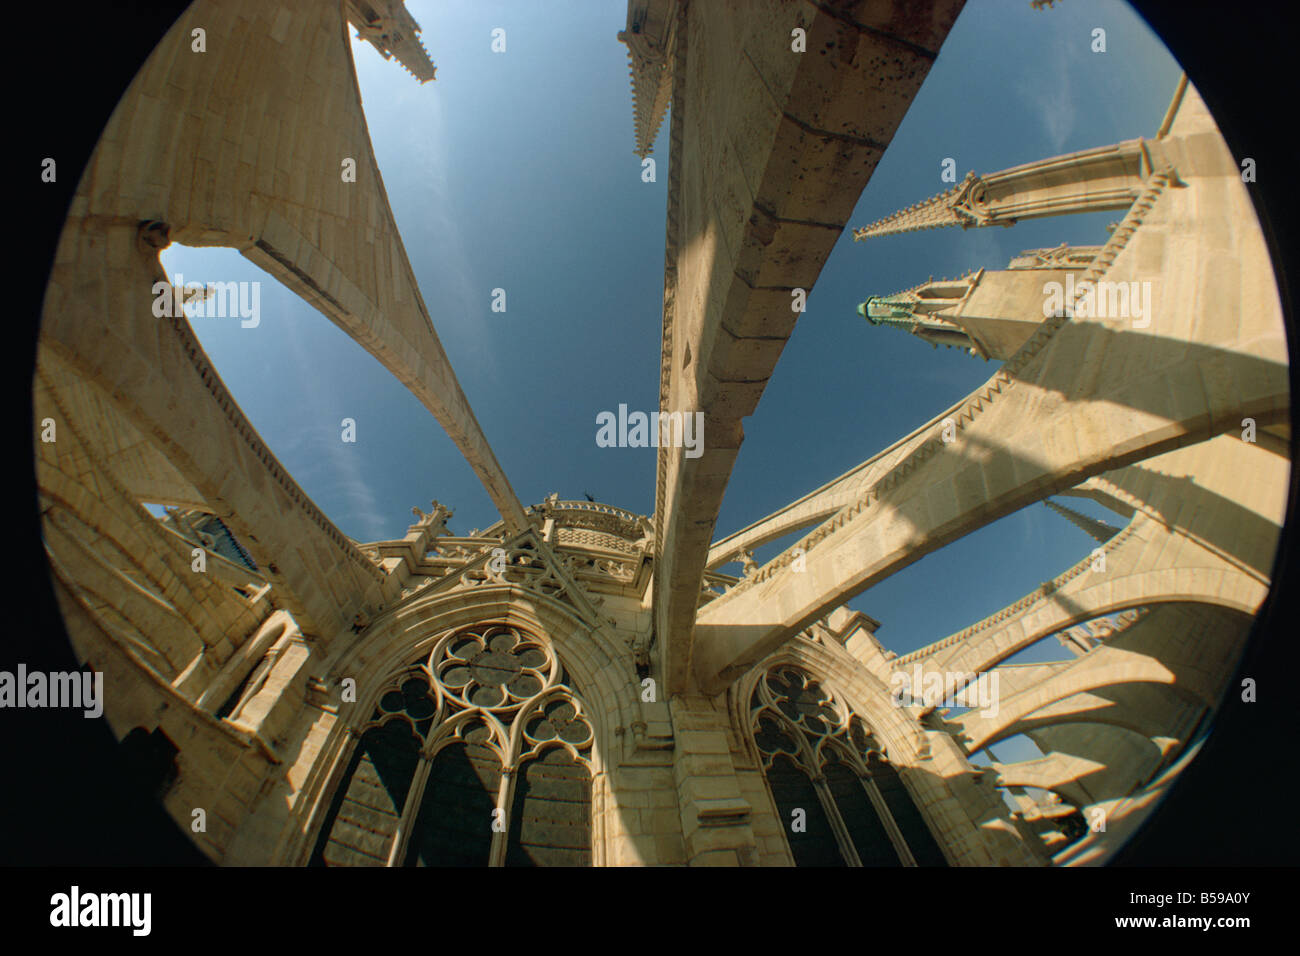 Fish eye lens view of the flying butresses of Notre Dame Cathedral, Paris, France, Europe - Stock Image